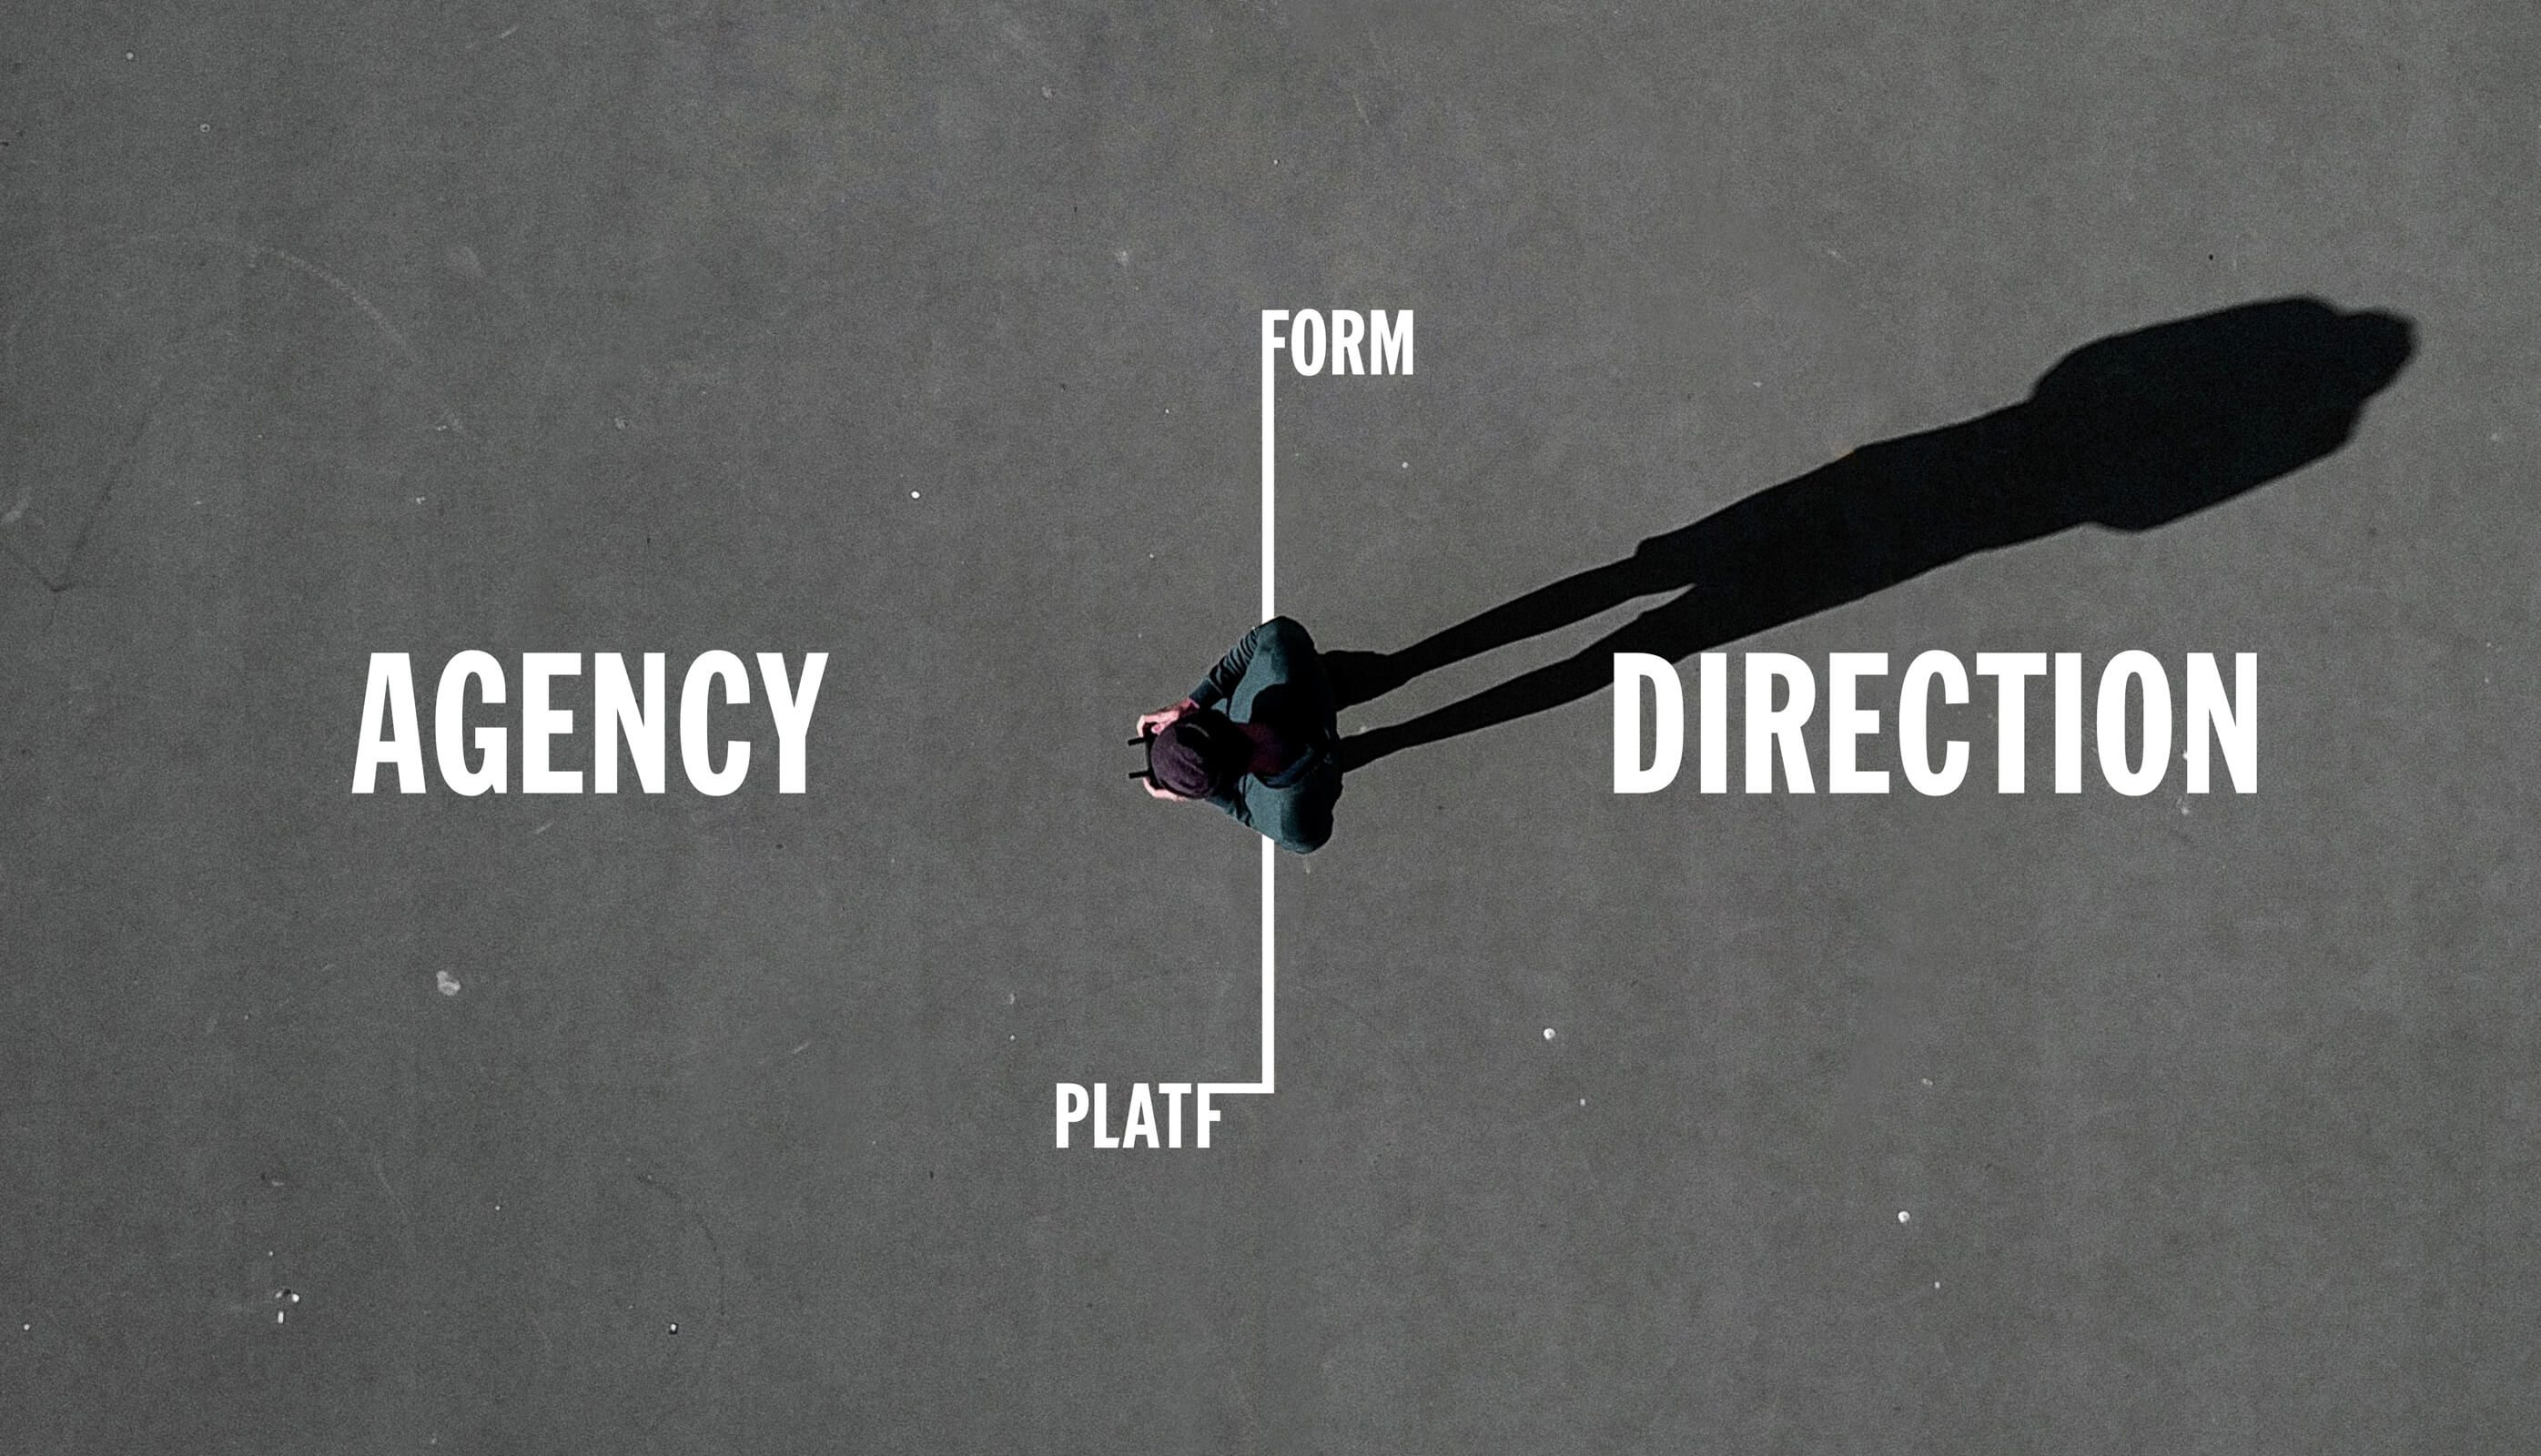 Agency and direction